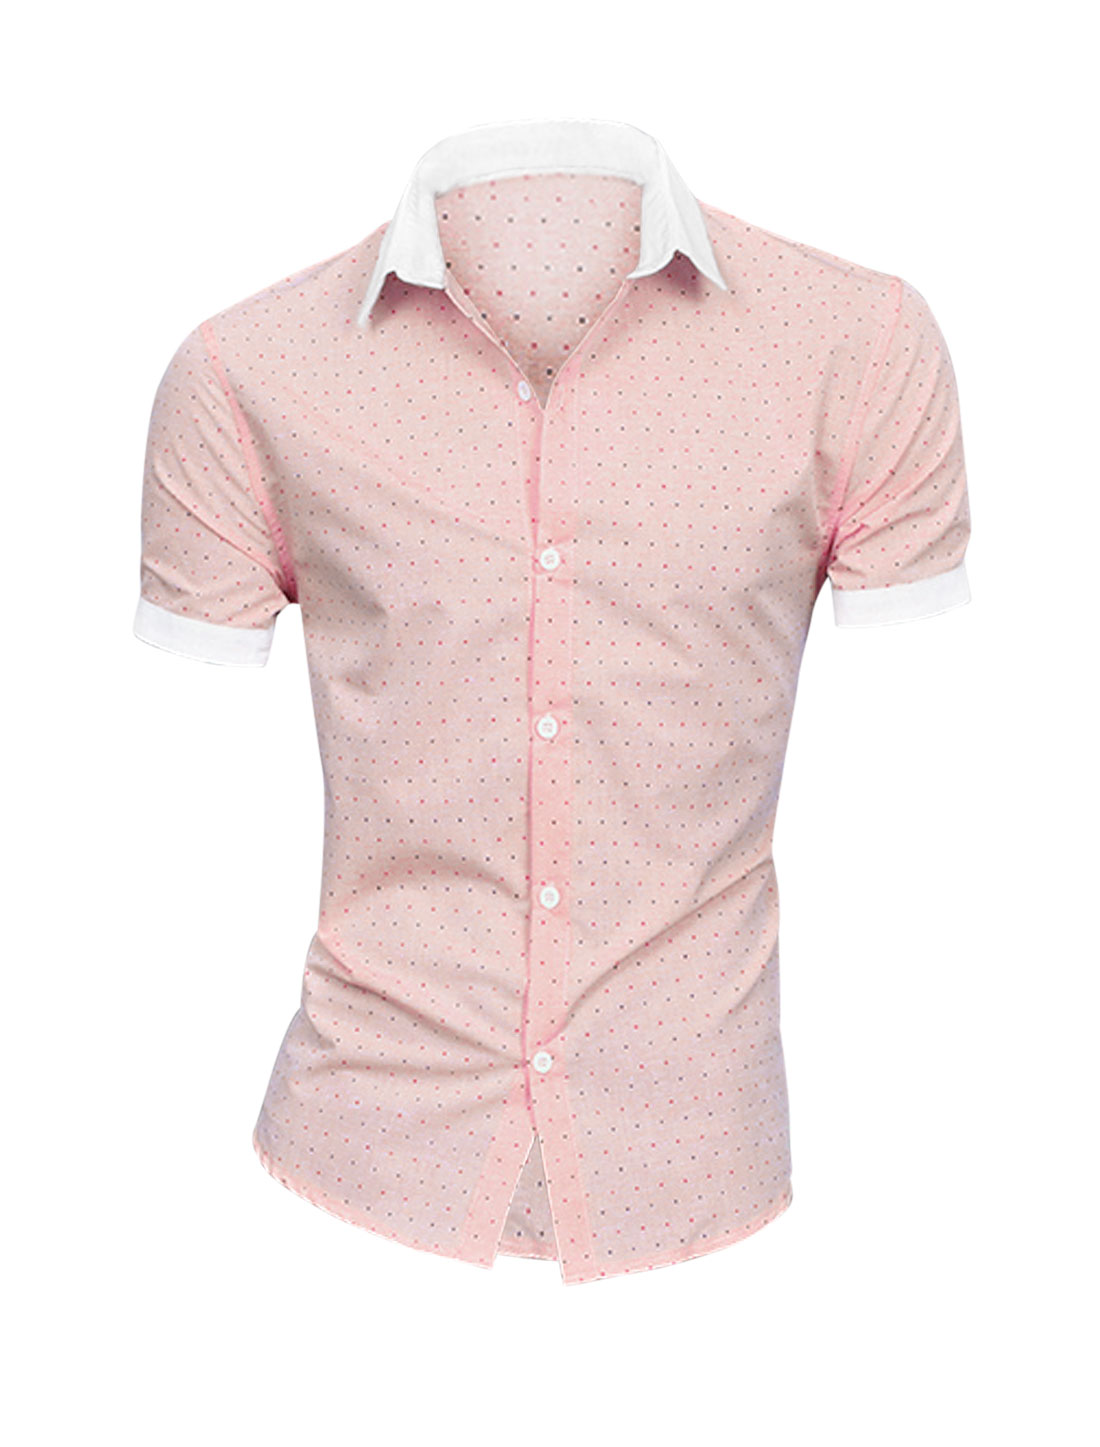 Men Trendy Hearts Pattern Buttons Closed Top Shirt Light Salmon M